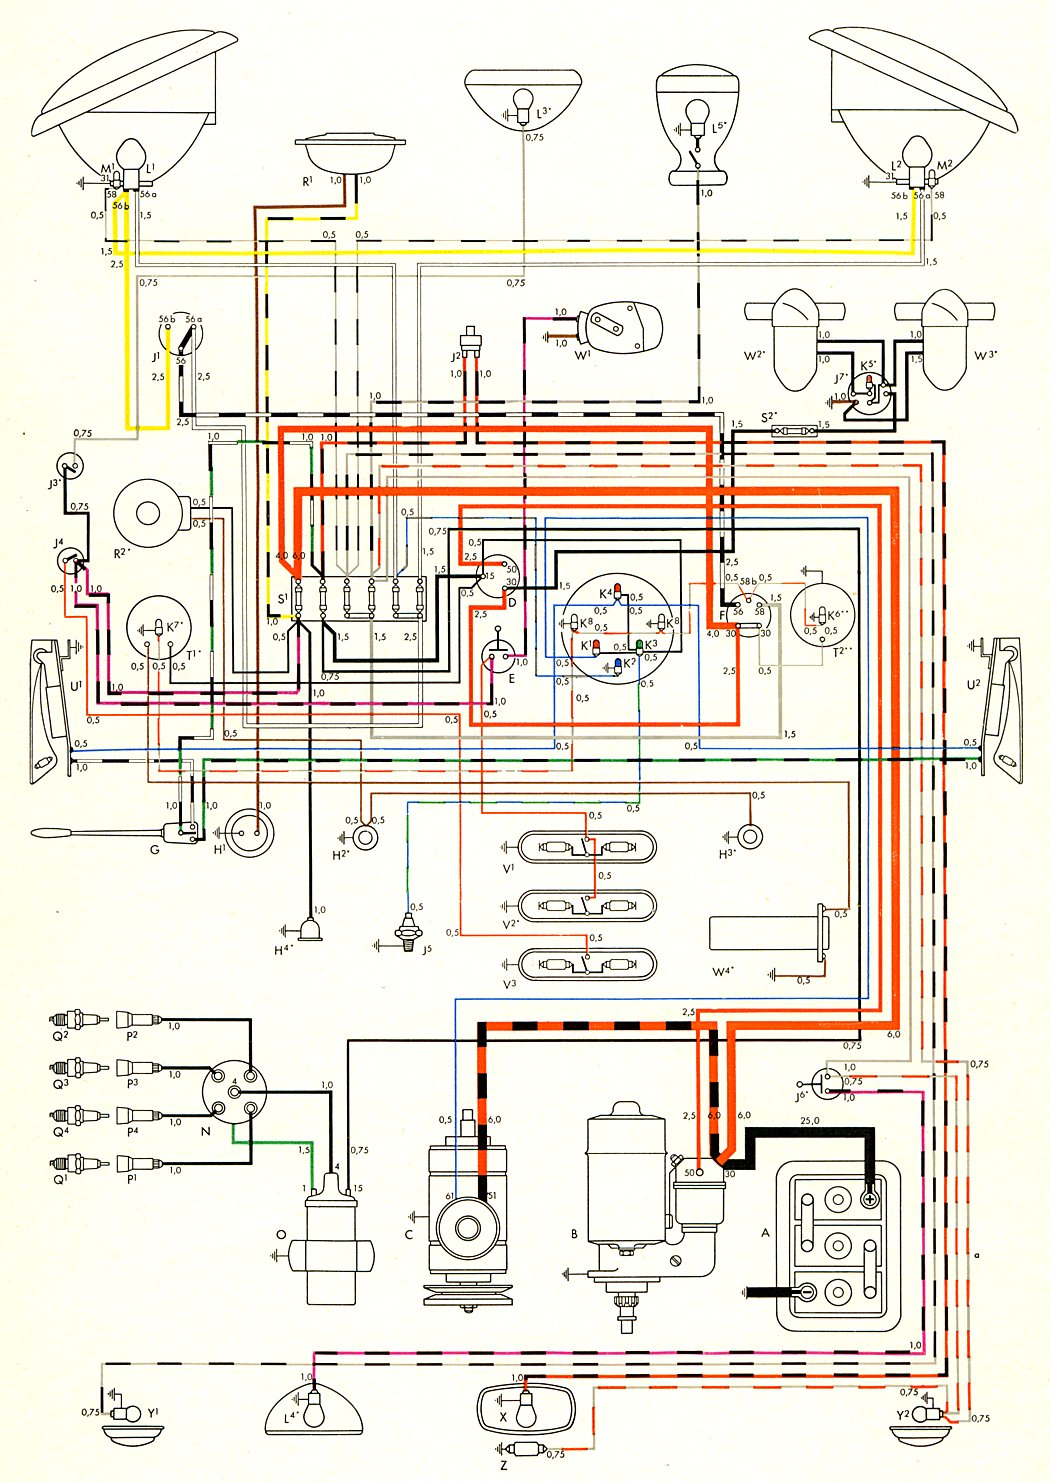 bus_nov57 thesamba com type 2 wiring diagrams Electrical Wiring Diagrams at reclaimingppi.co